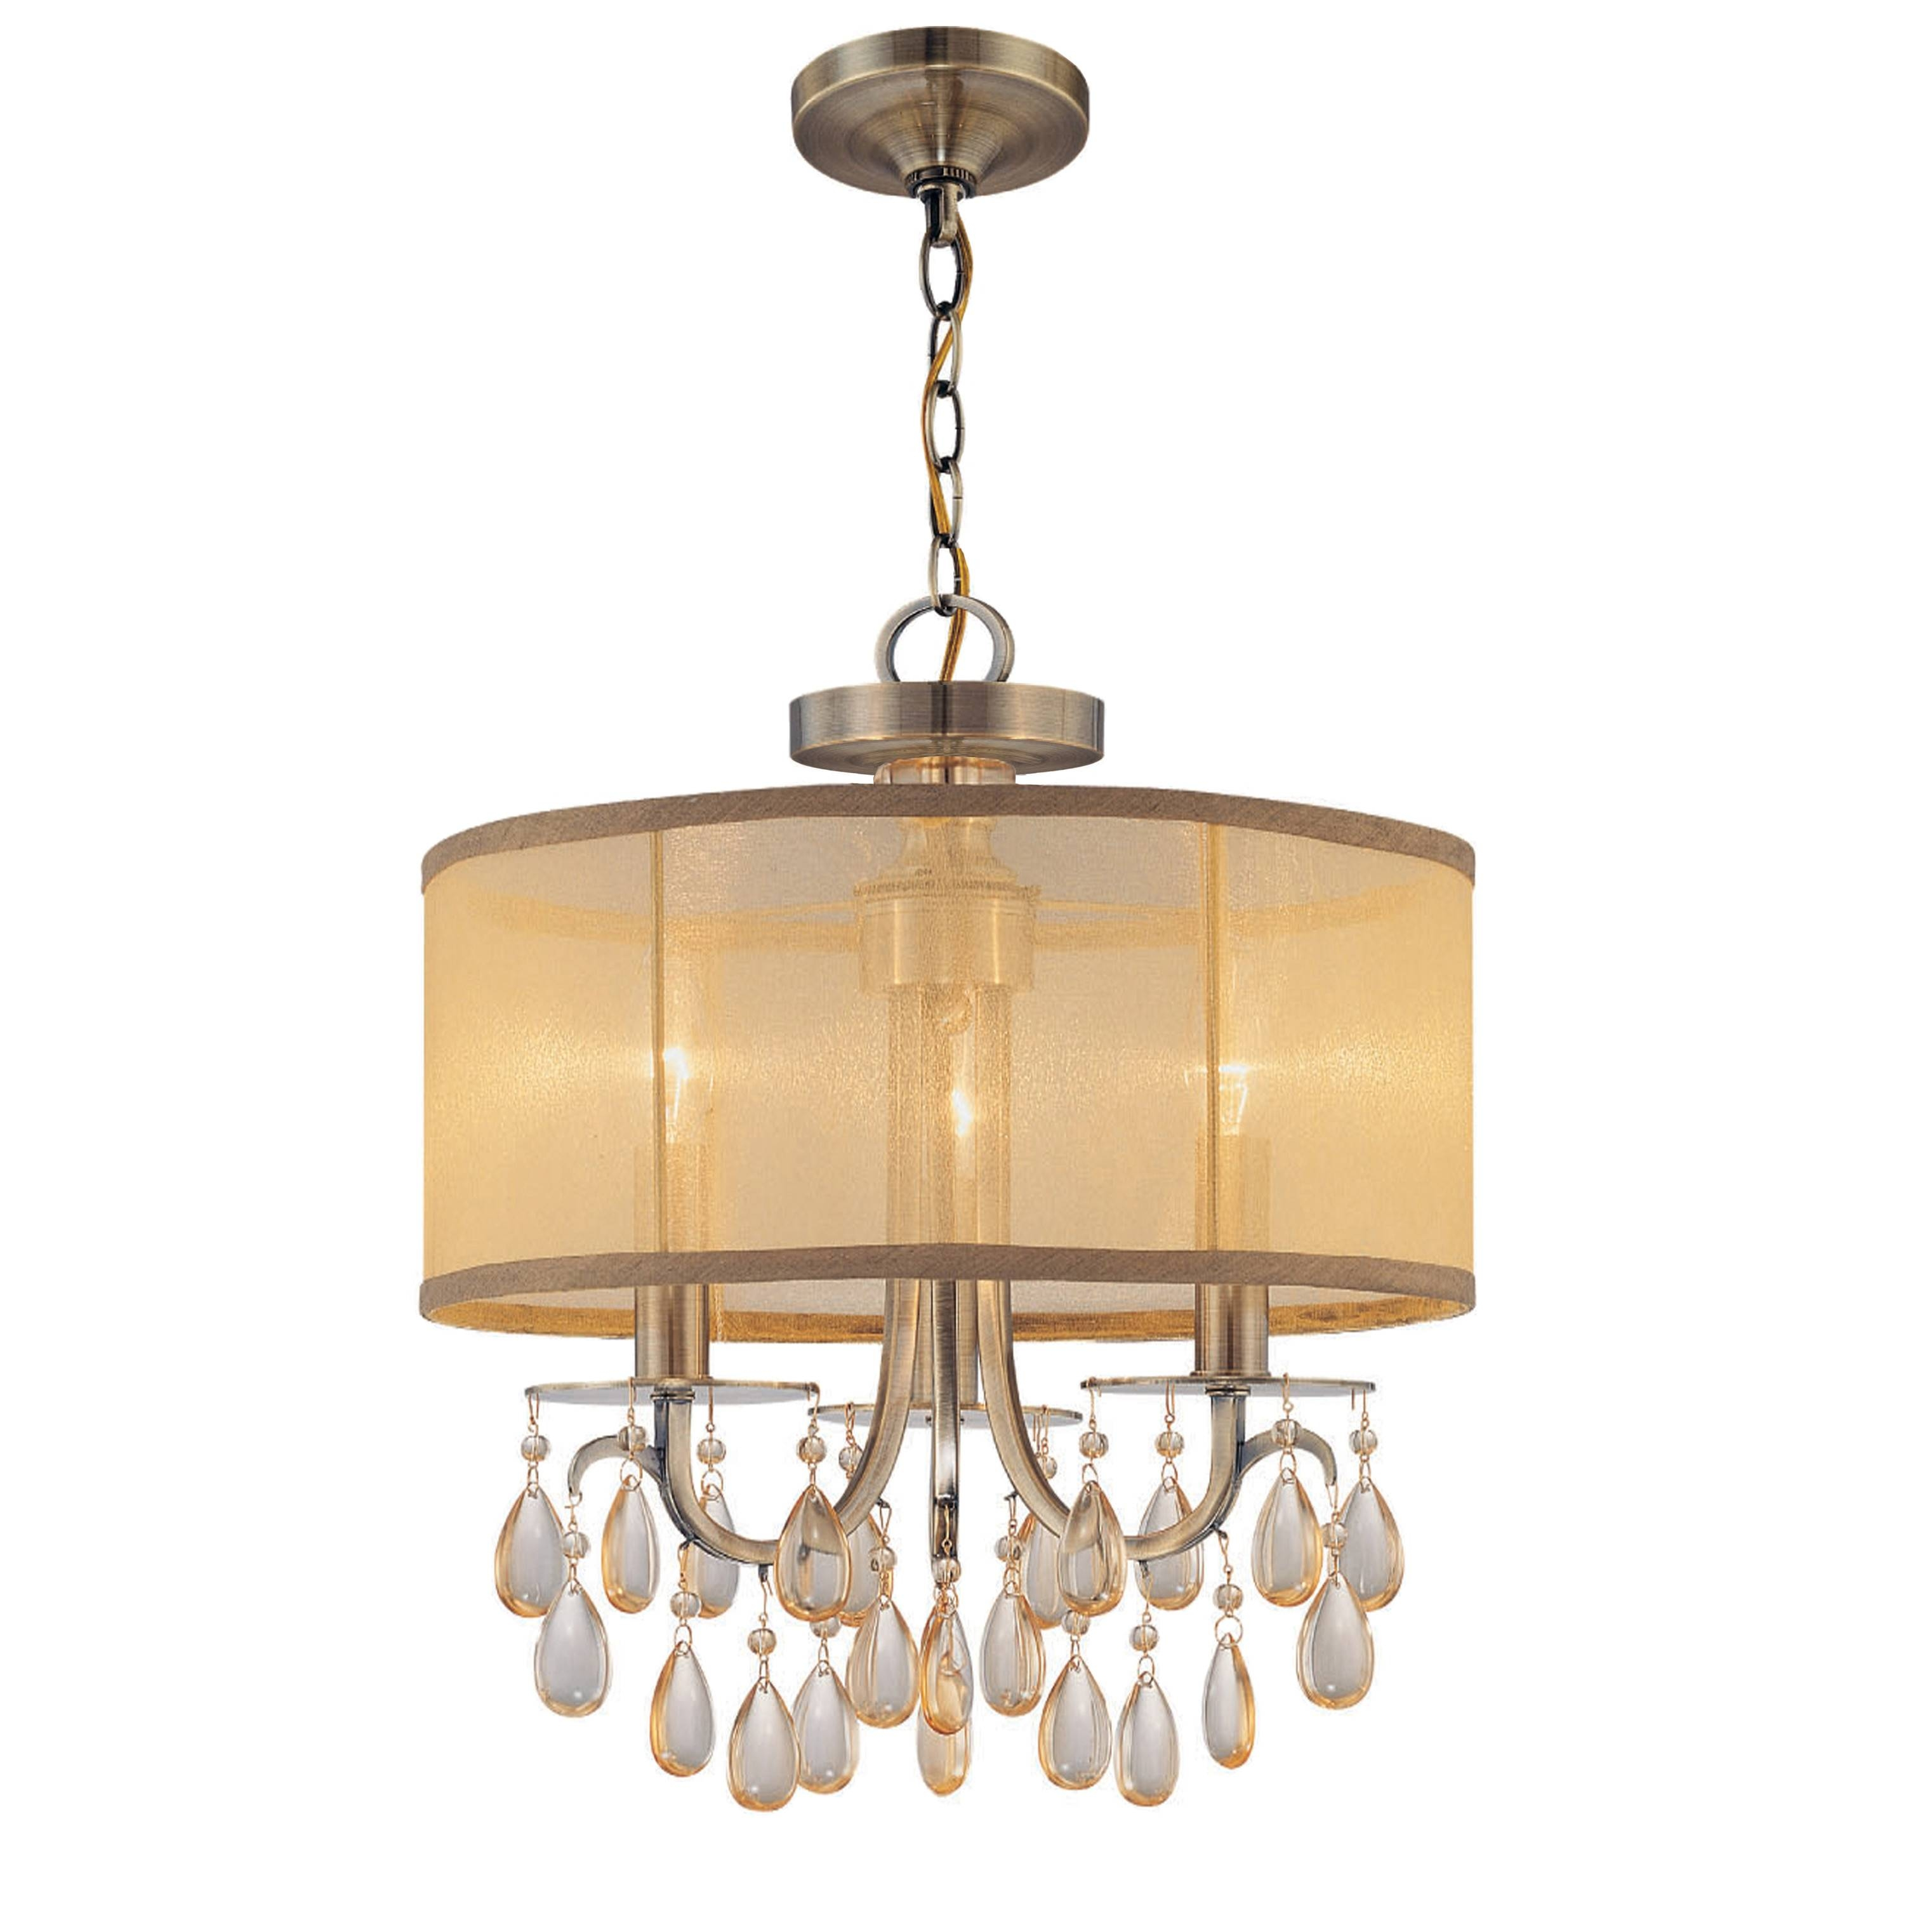 Pottery Barn Edison Lights | West Elm Chandelier | West Elm Ceiling Light